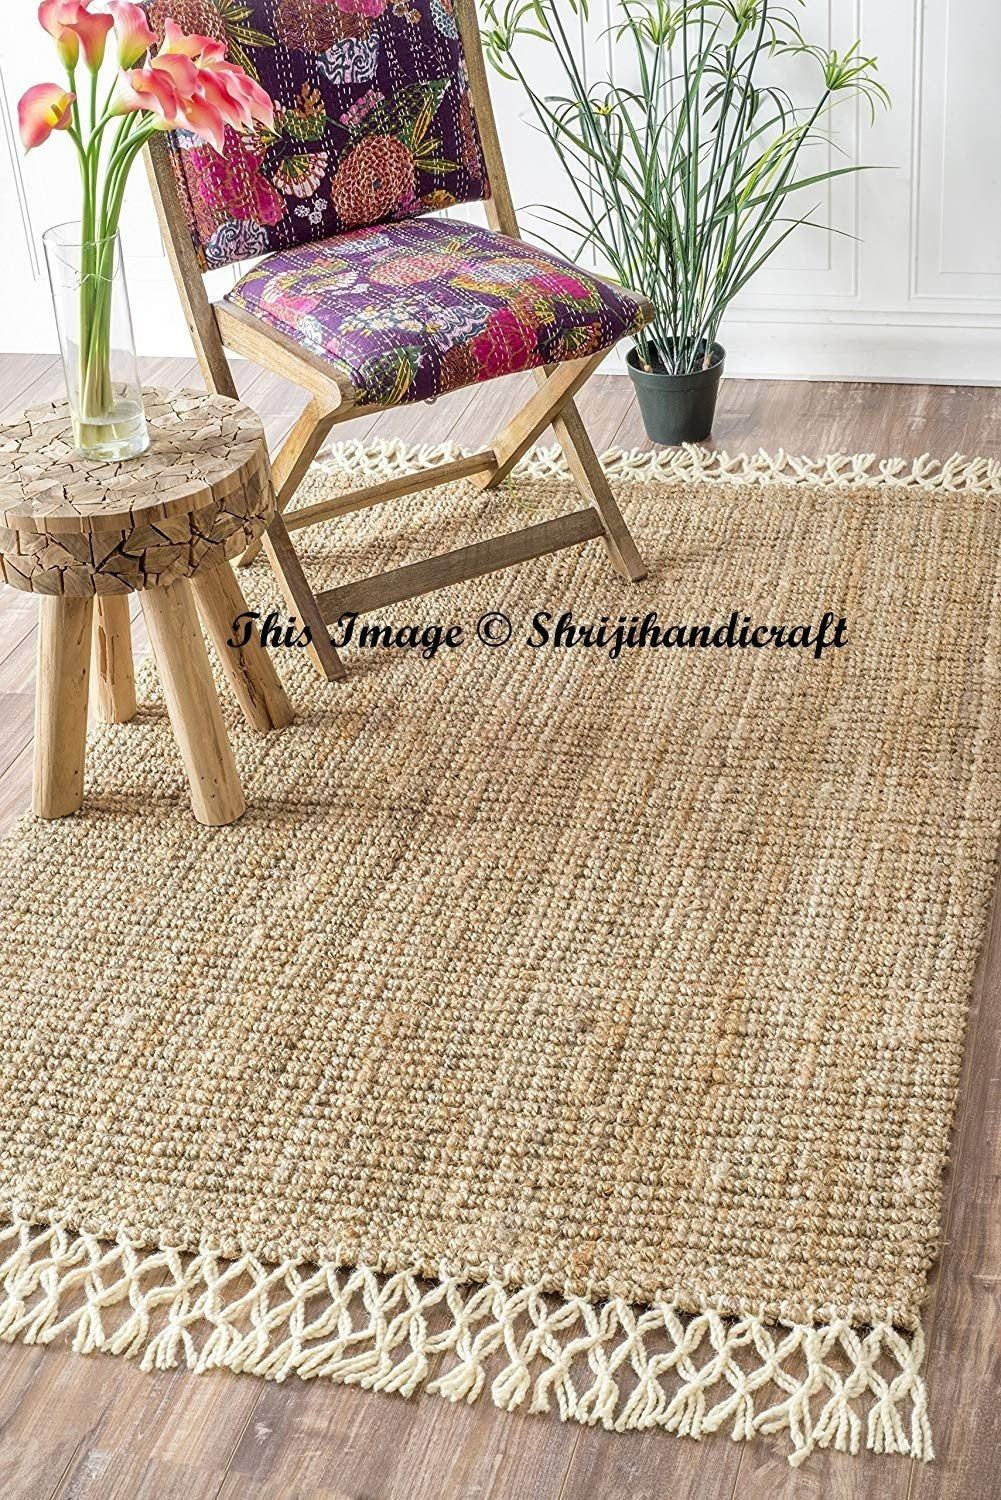 Jute Rag Rug Round Floor Rug Handmade Jute Rug Natural Jute Round Rug Indian Handmade Handwoven Ribbed Solid Area Rugs Beautiful Floor Rug Natural Rug Fringe Rugs Natural Jute Rug